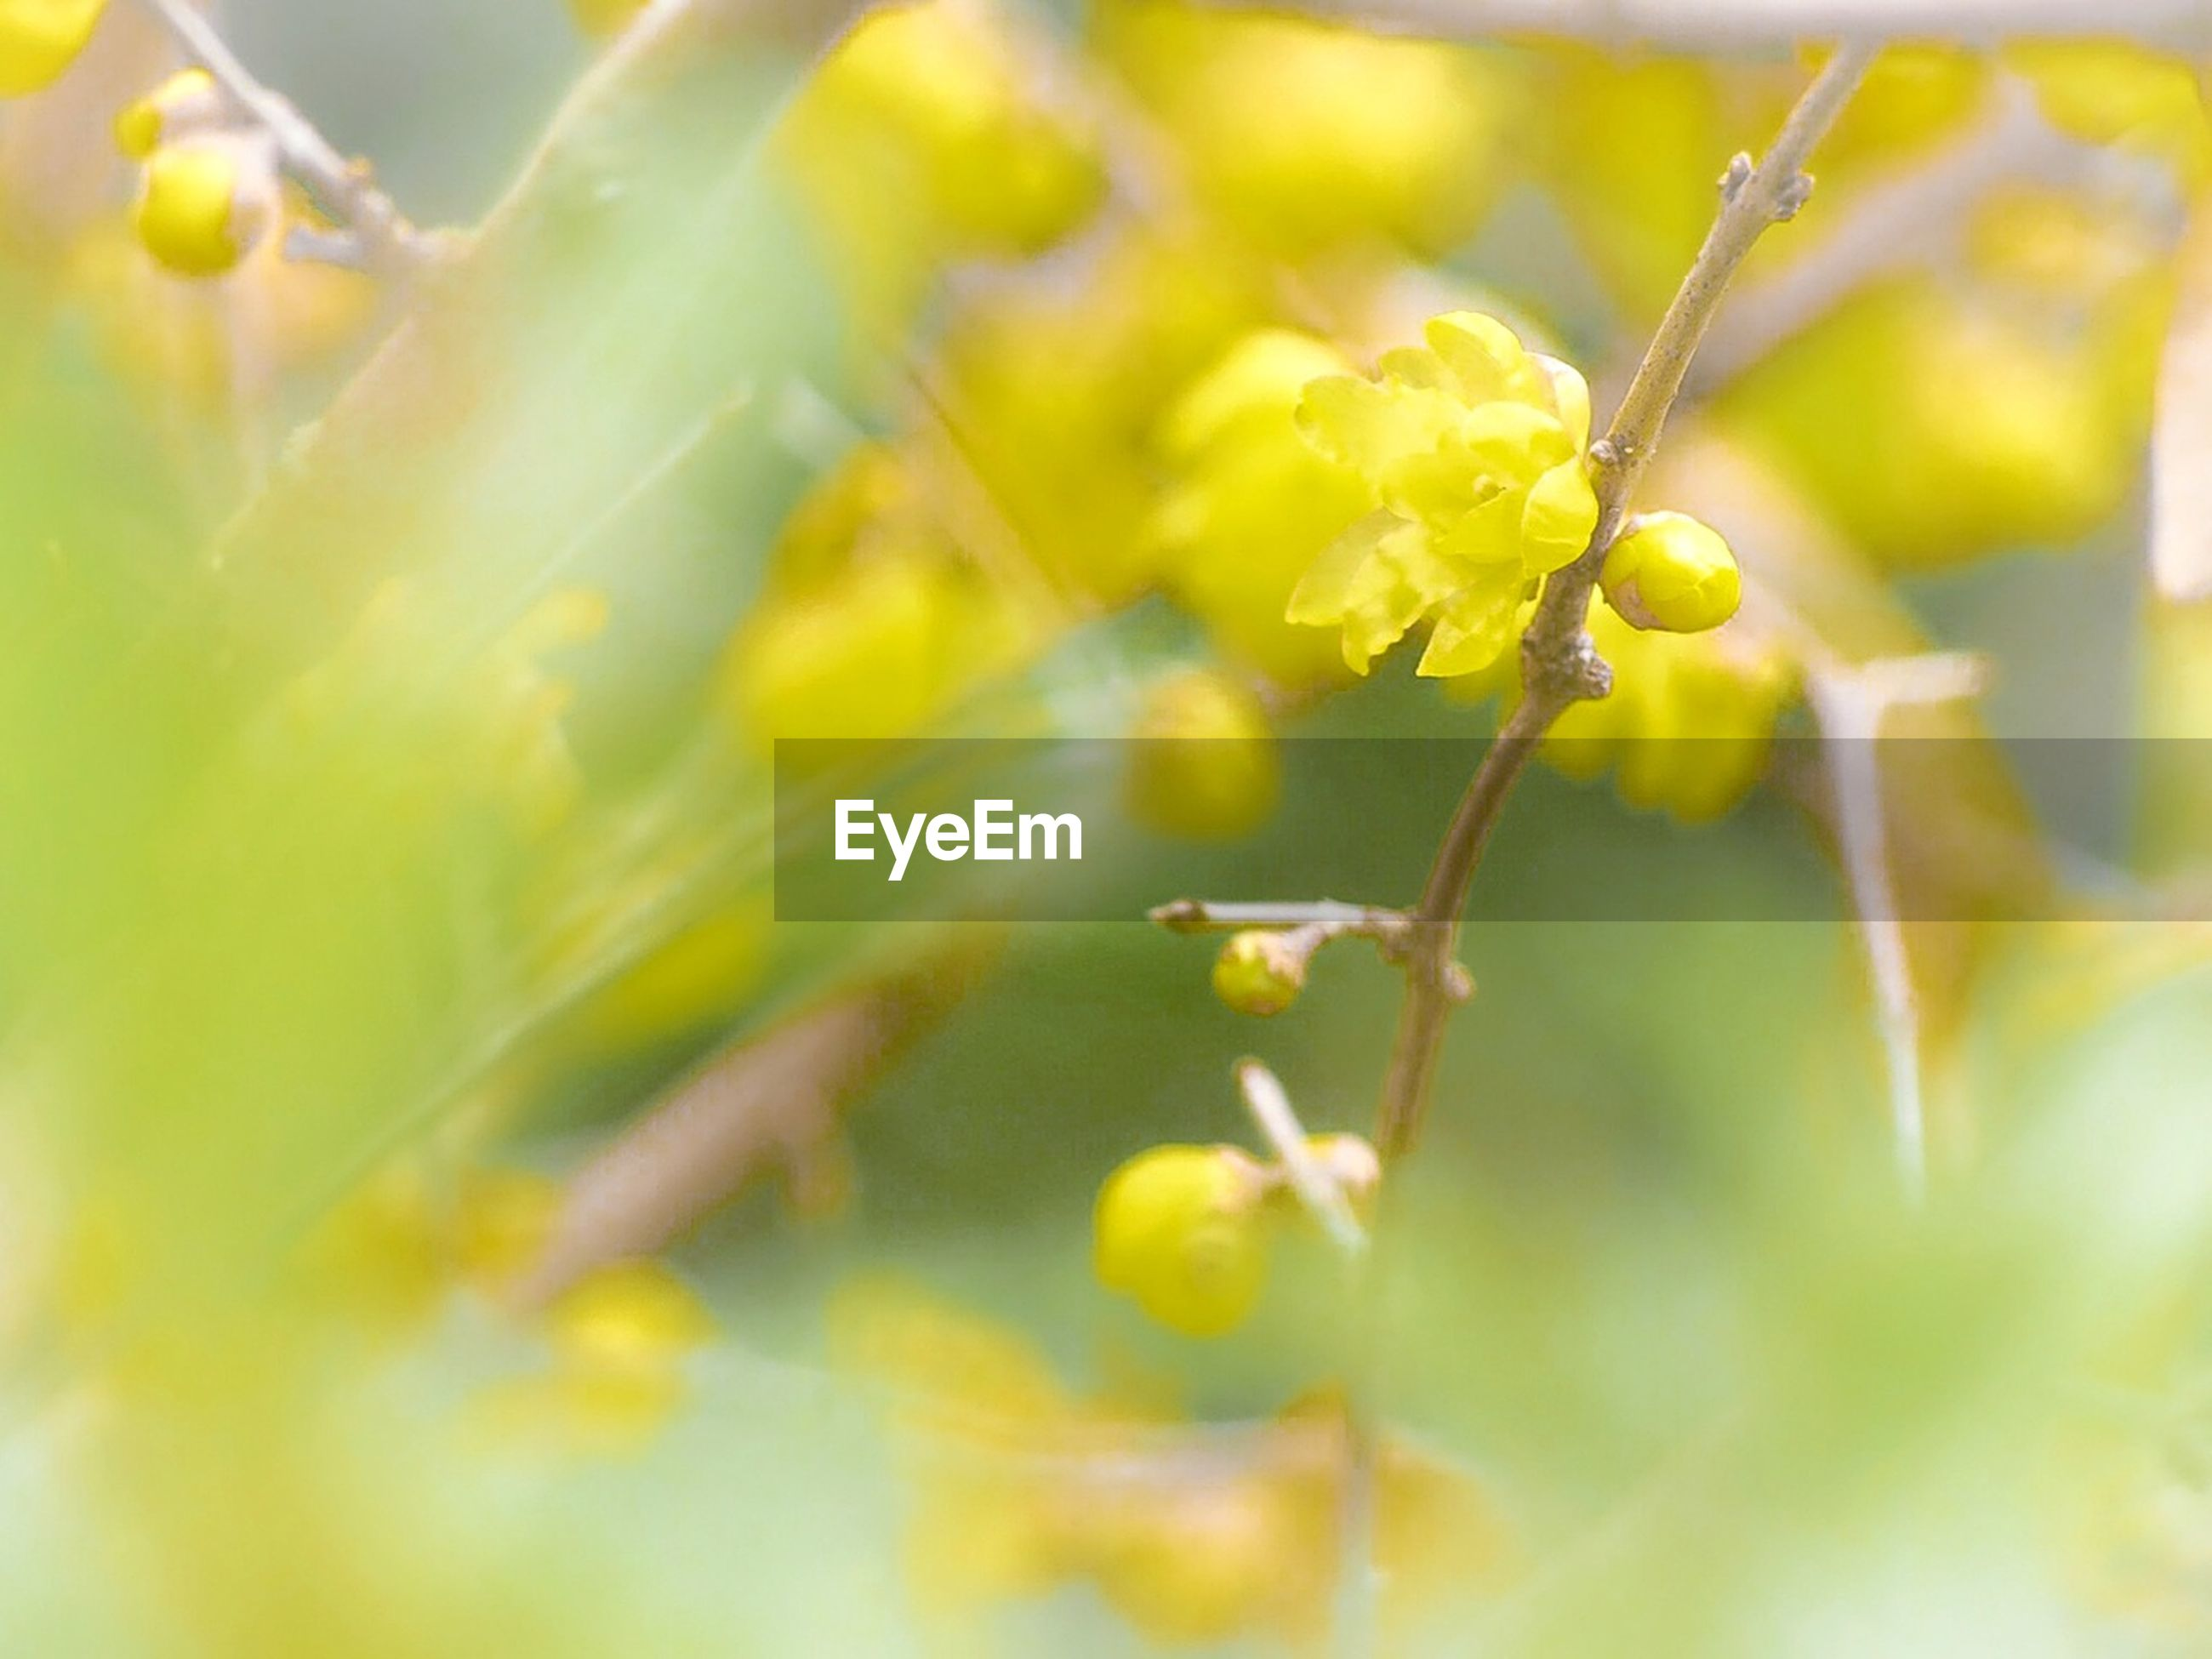 yellow, animal themes, nature, close-up, insect, growth, no people, animals in the wild, plant, one animal, animal wildlife, outdoors, beauty in nature, day, freshness, spider web